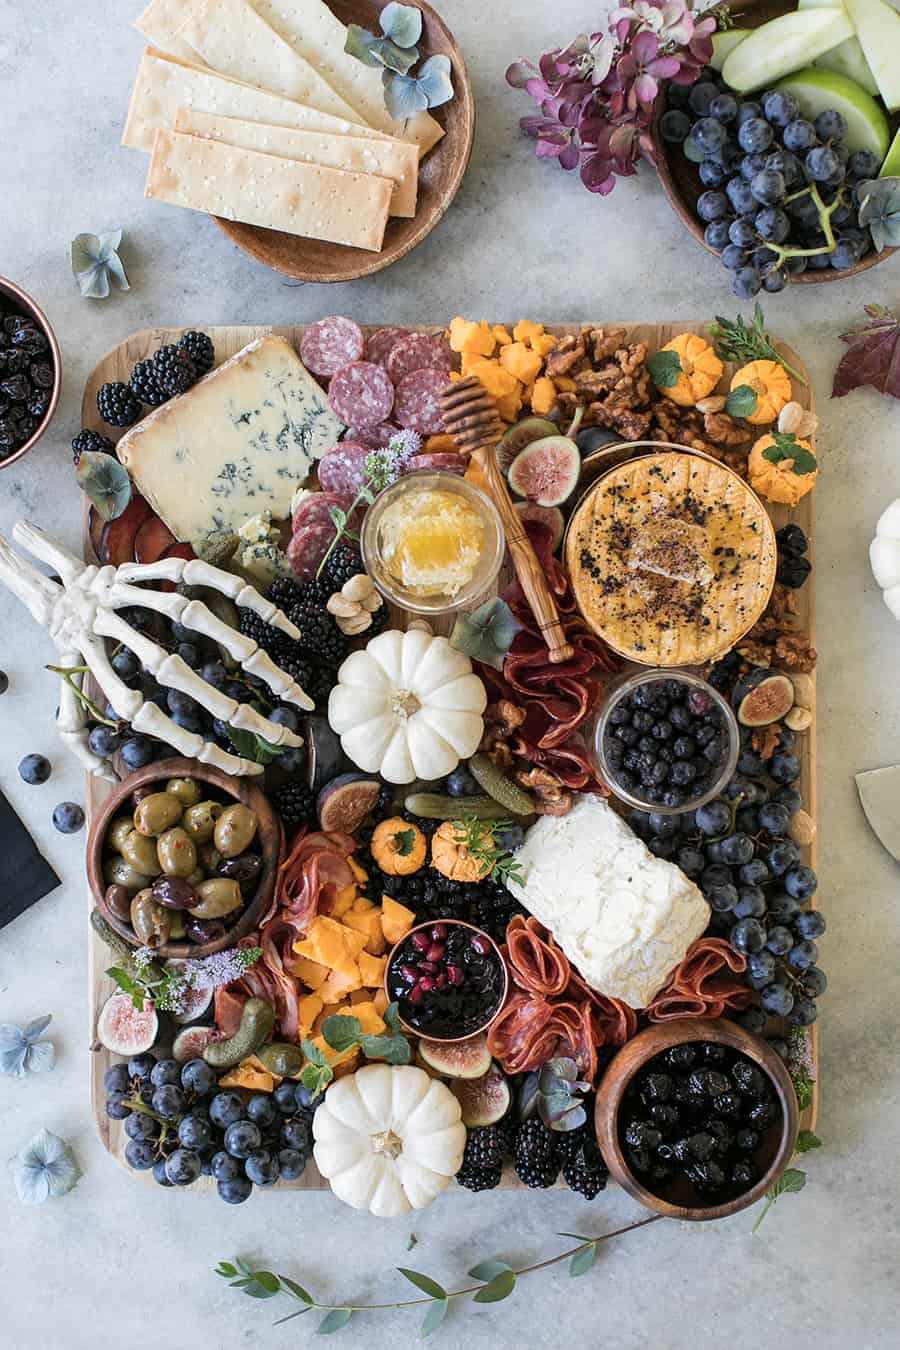 Halloween Meat and Cheese Board with pumpkins, berries, pickles, olives, cheese and meat.